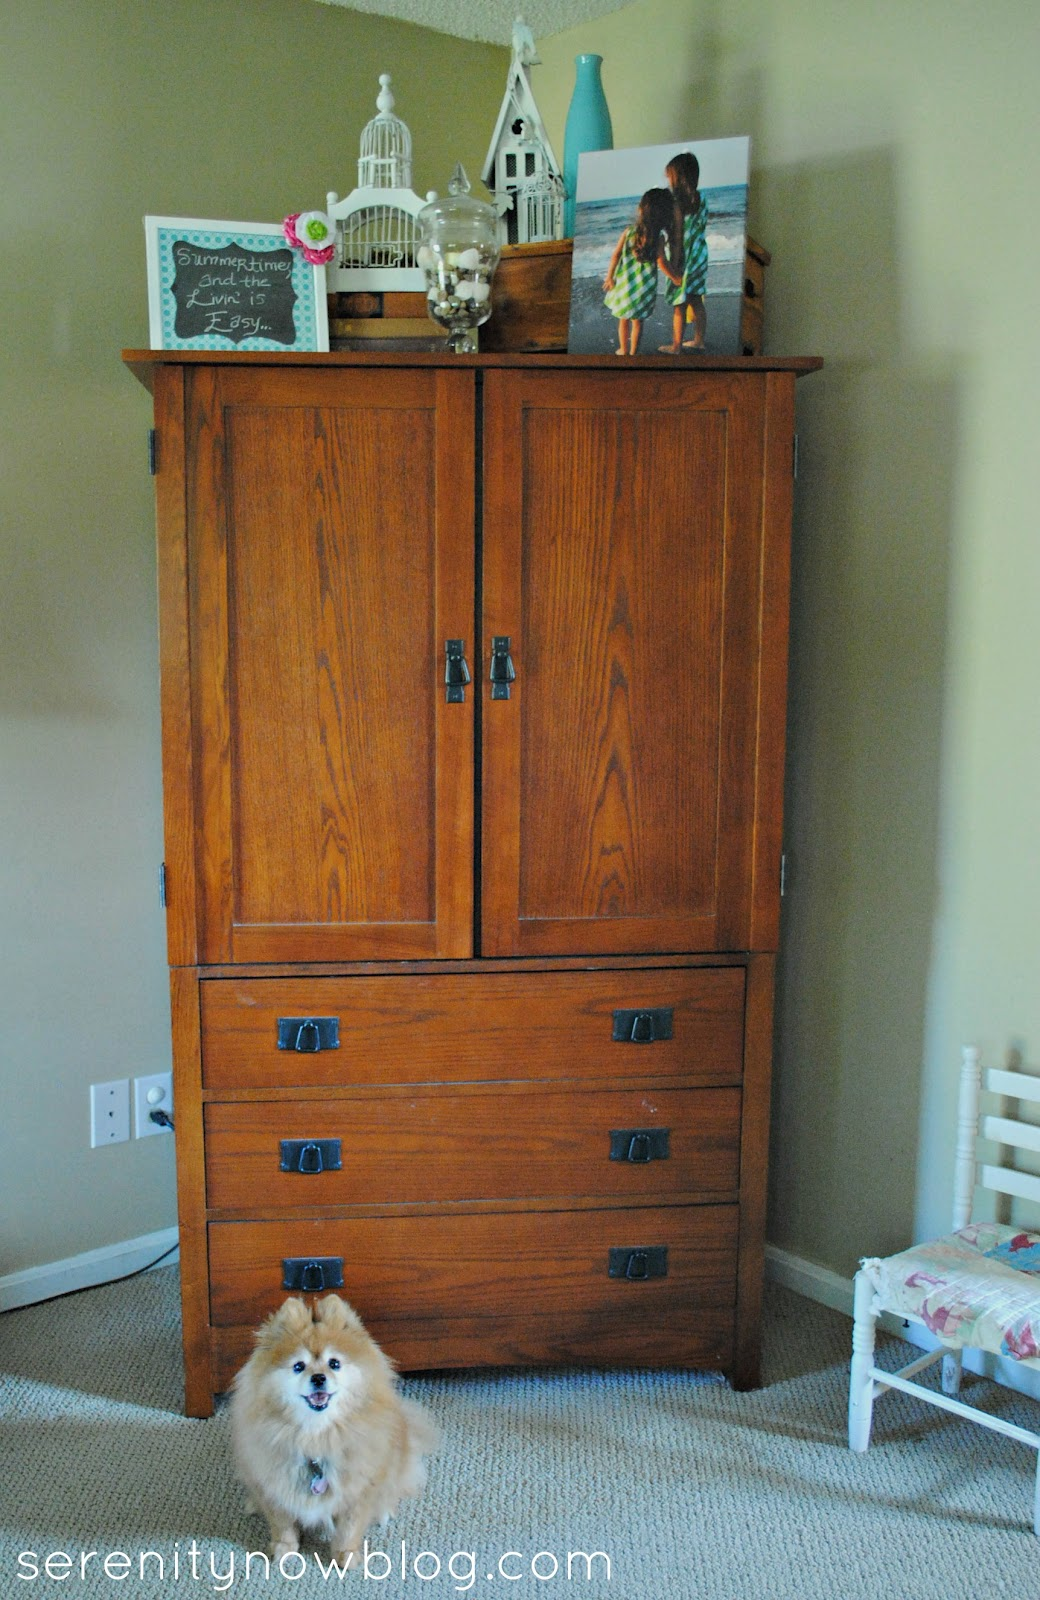 Tops - Top Of Cabinet Decorating Ideas